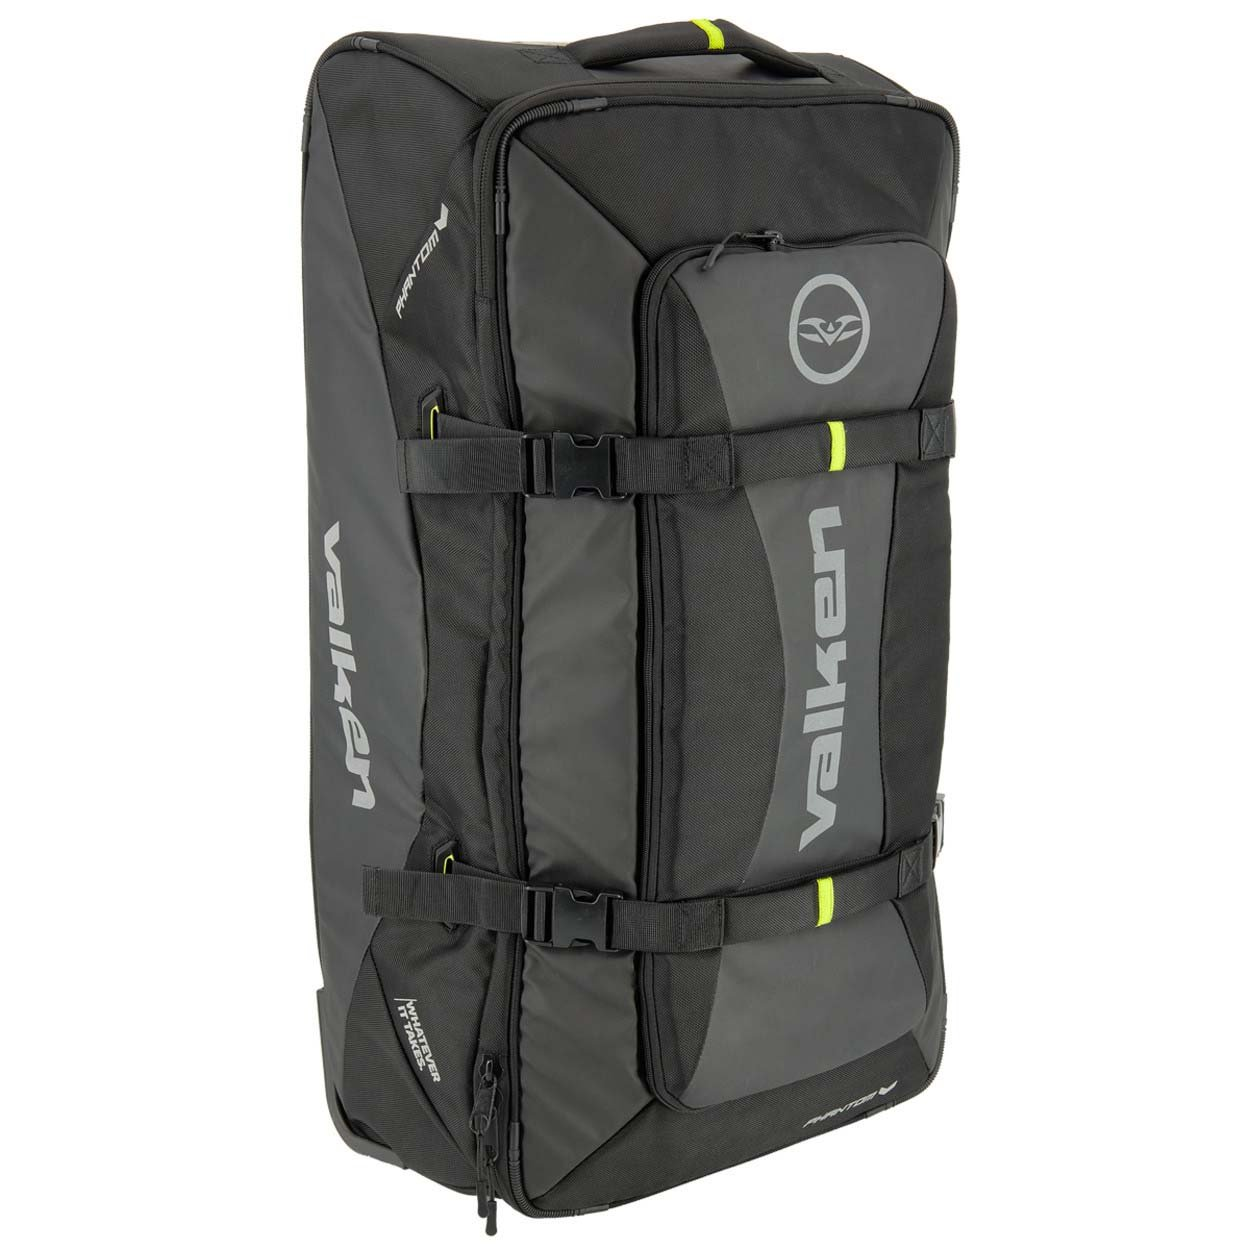 Valken Phantom Rolling Gear Bag Black